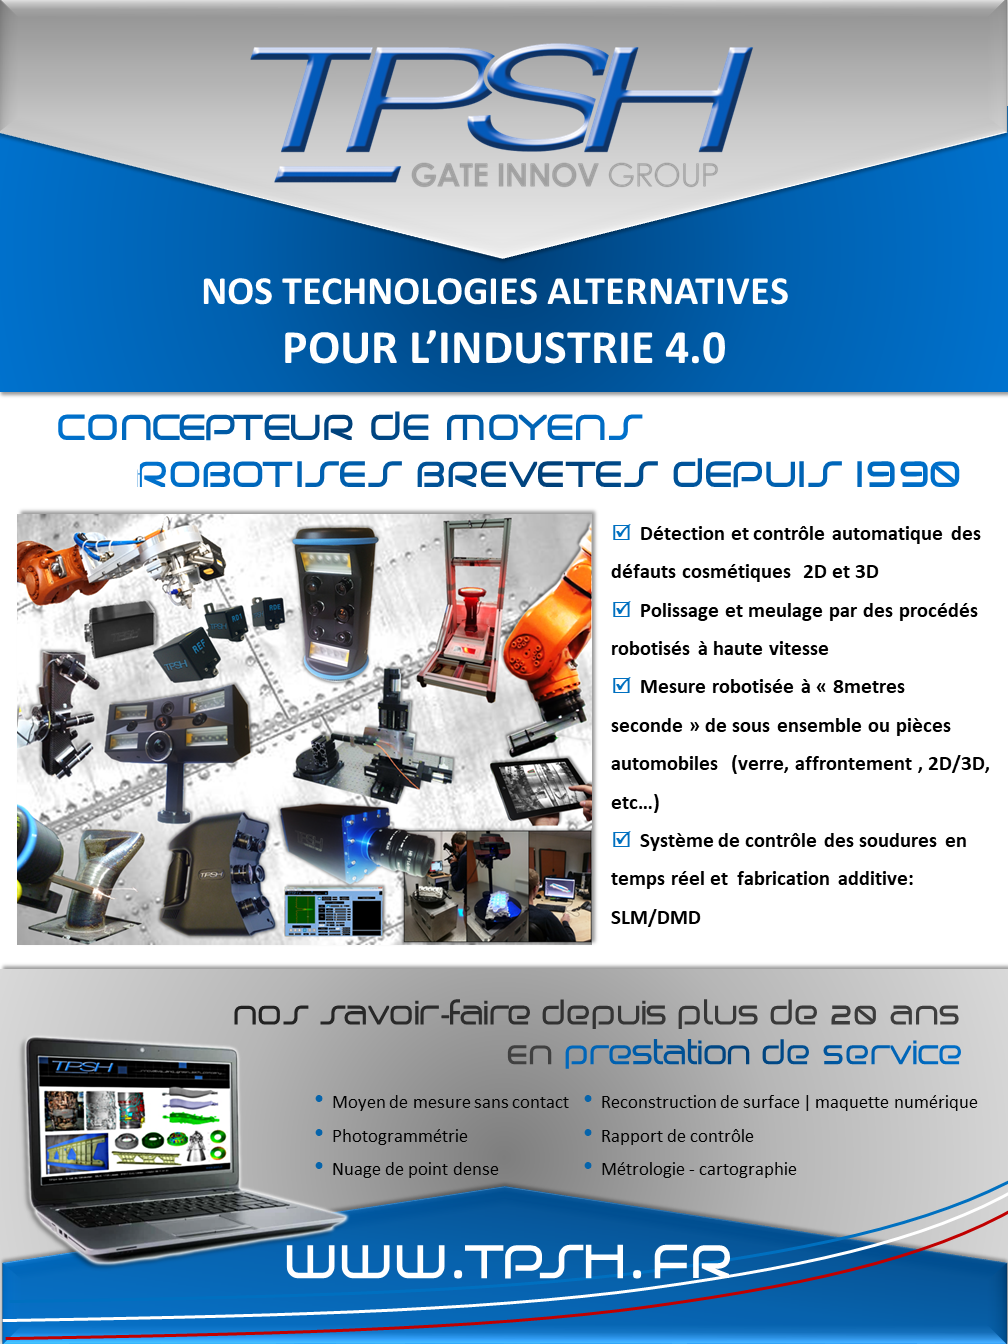 TPSH_nos technologies alternatives pour l'industrie 4.0